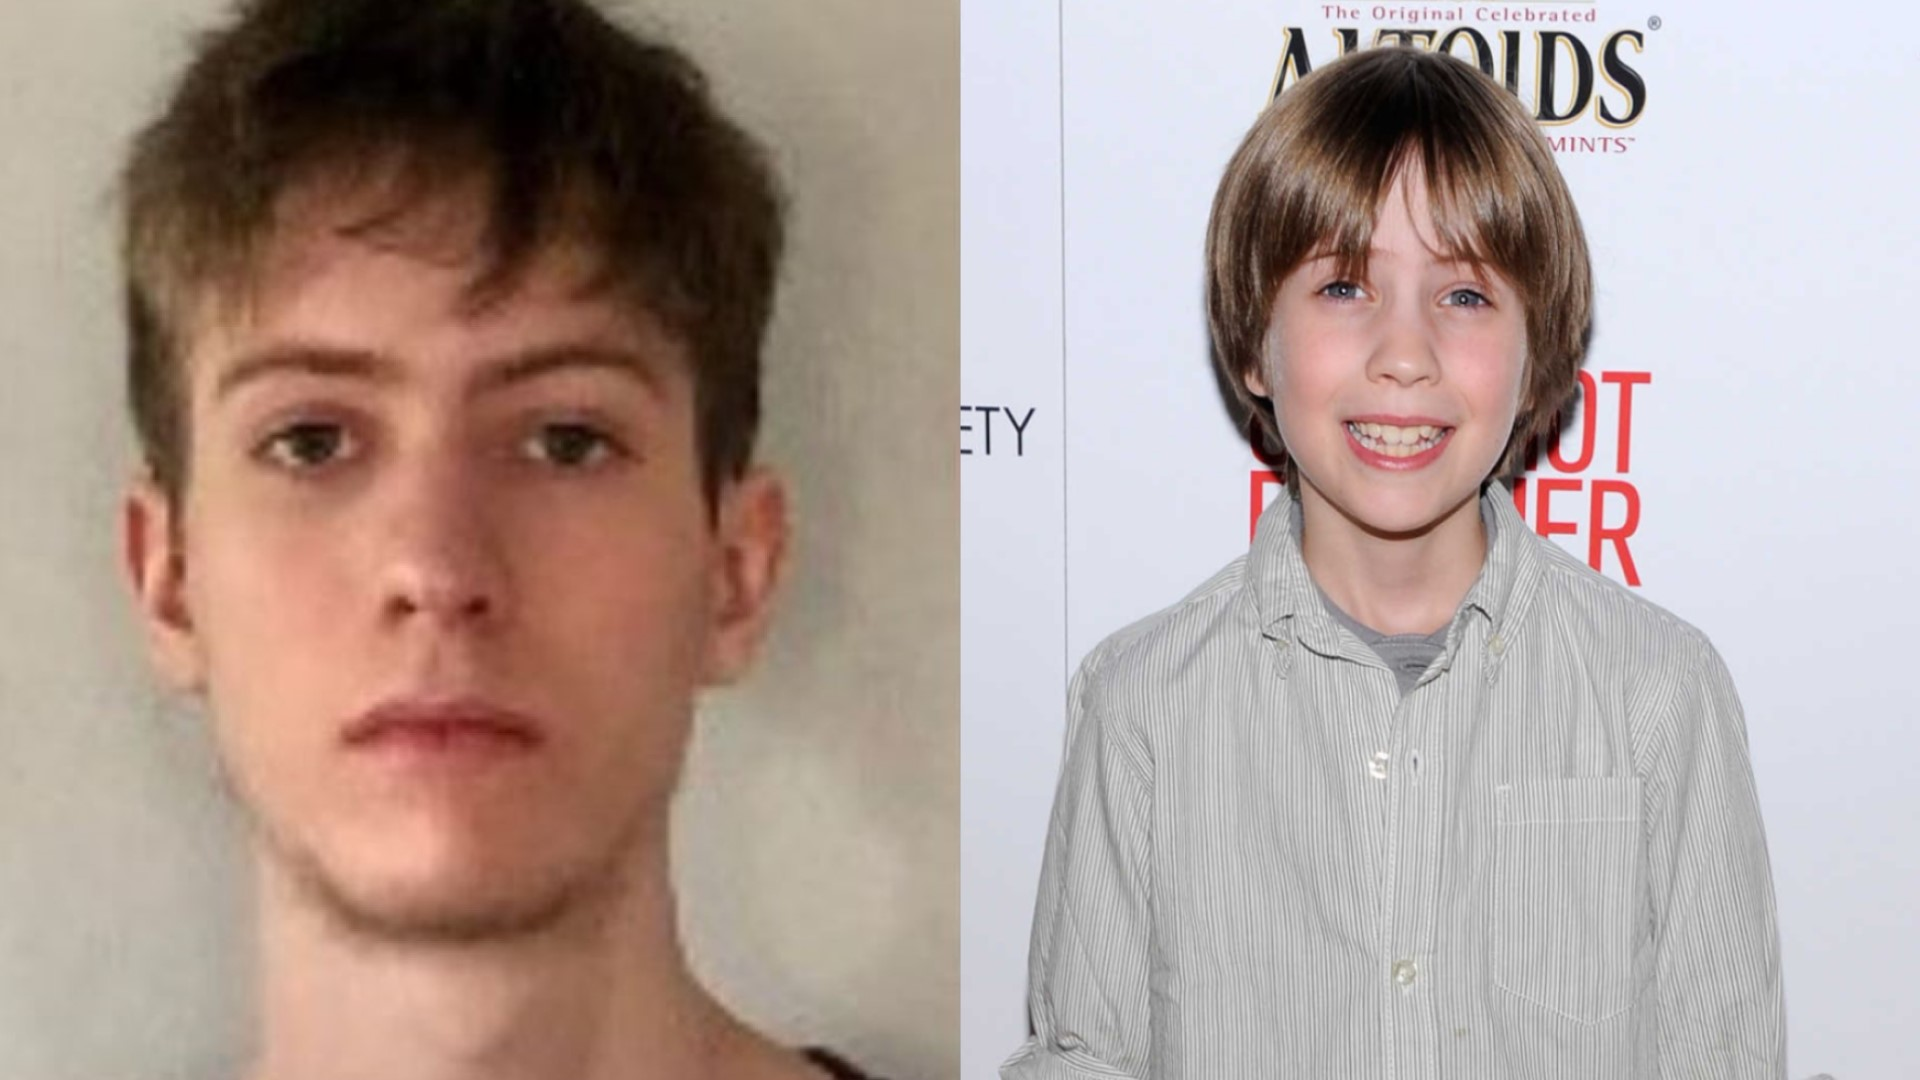 Tragic news: This is why actor Matthew Mindler passed away at age 19